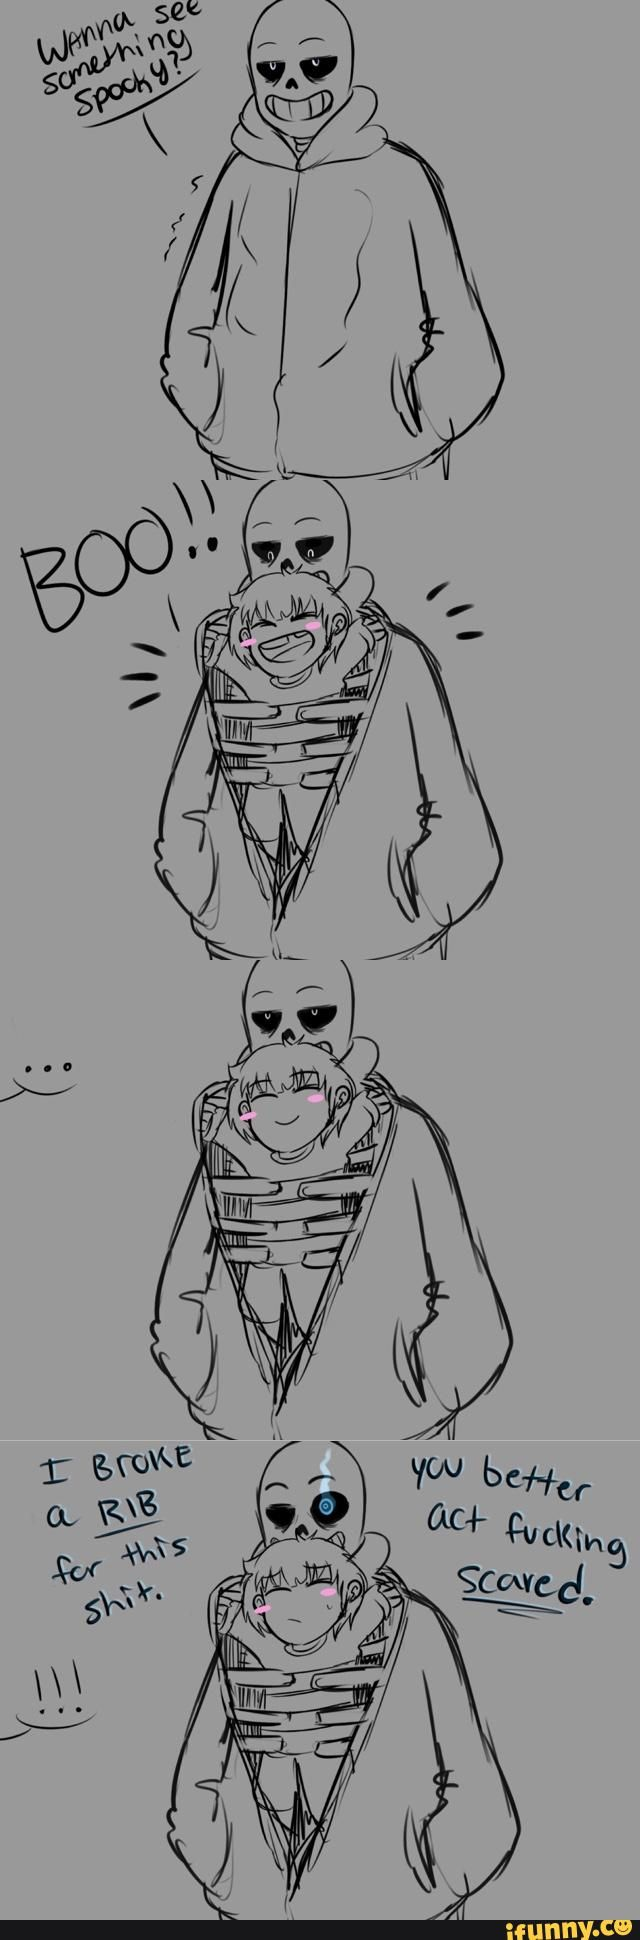 Big bro sans gots his little sis frisks back :3